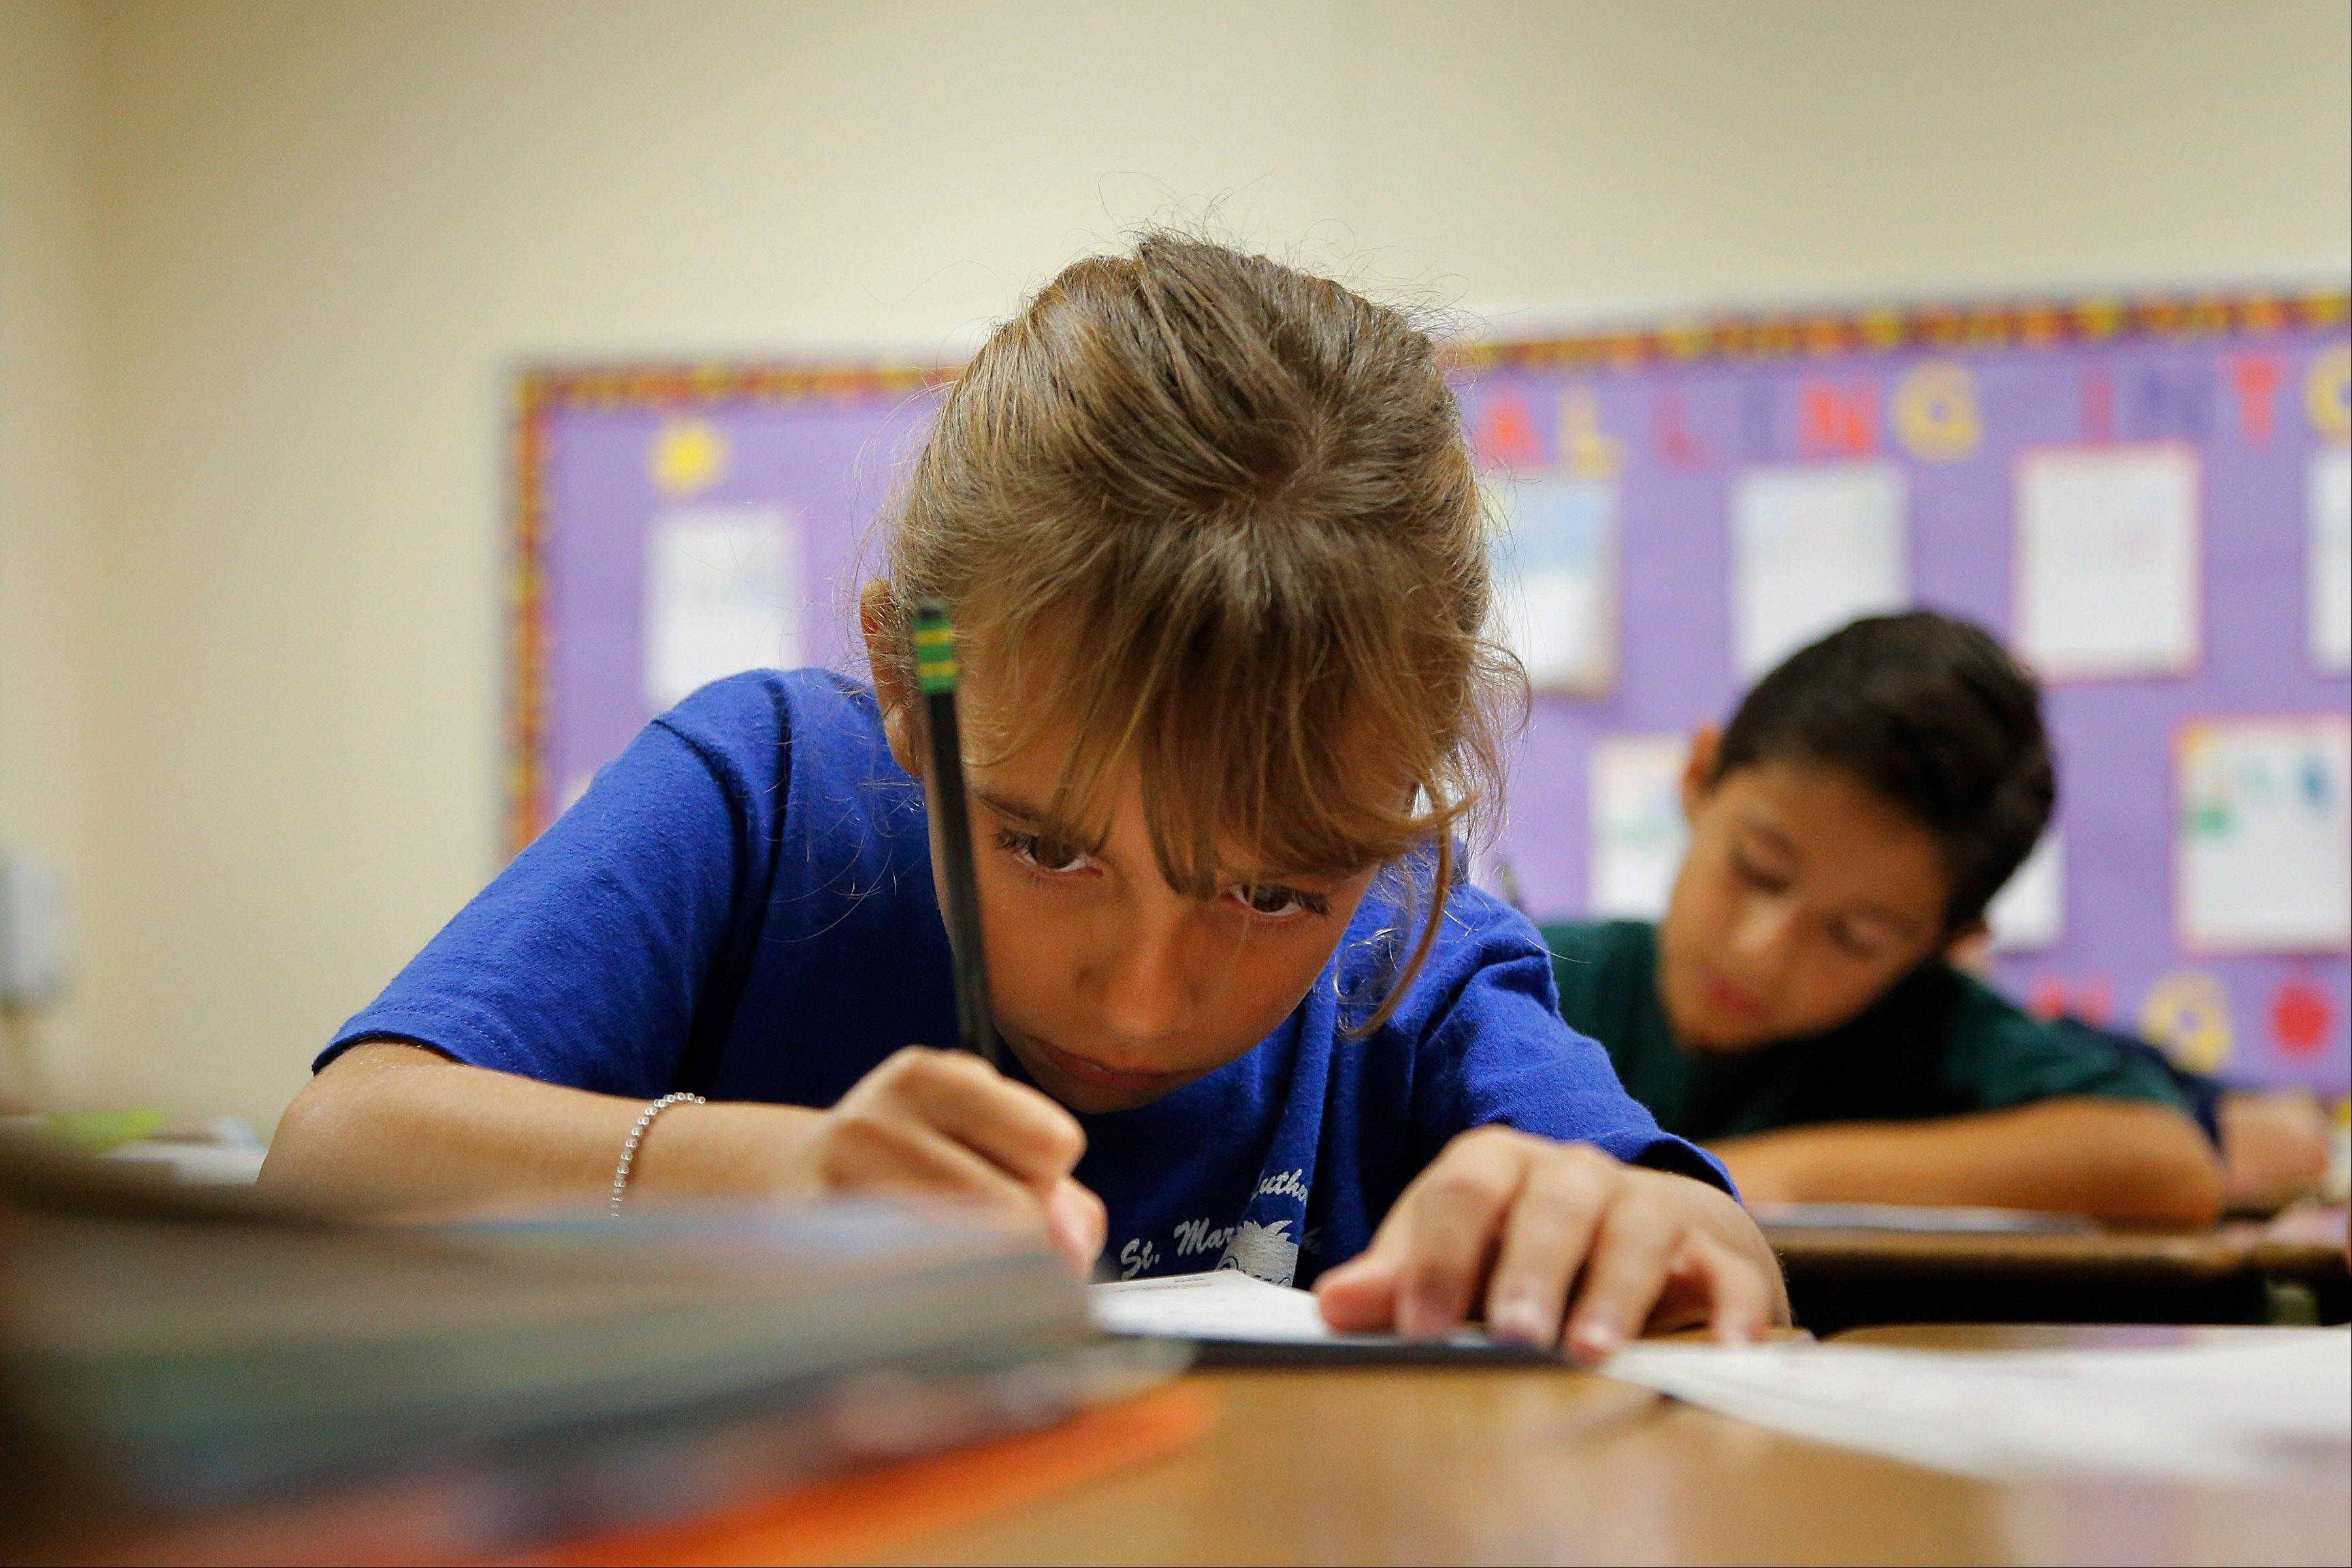 Alexia Herrera practices writing in cursive Thursday at St. Markís Lutheran School in Hacienda Heights, Calif.